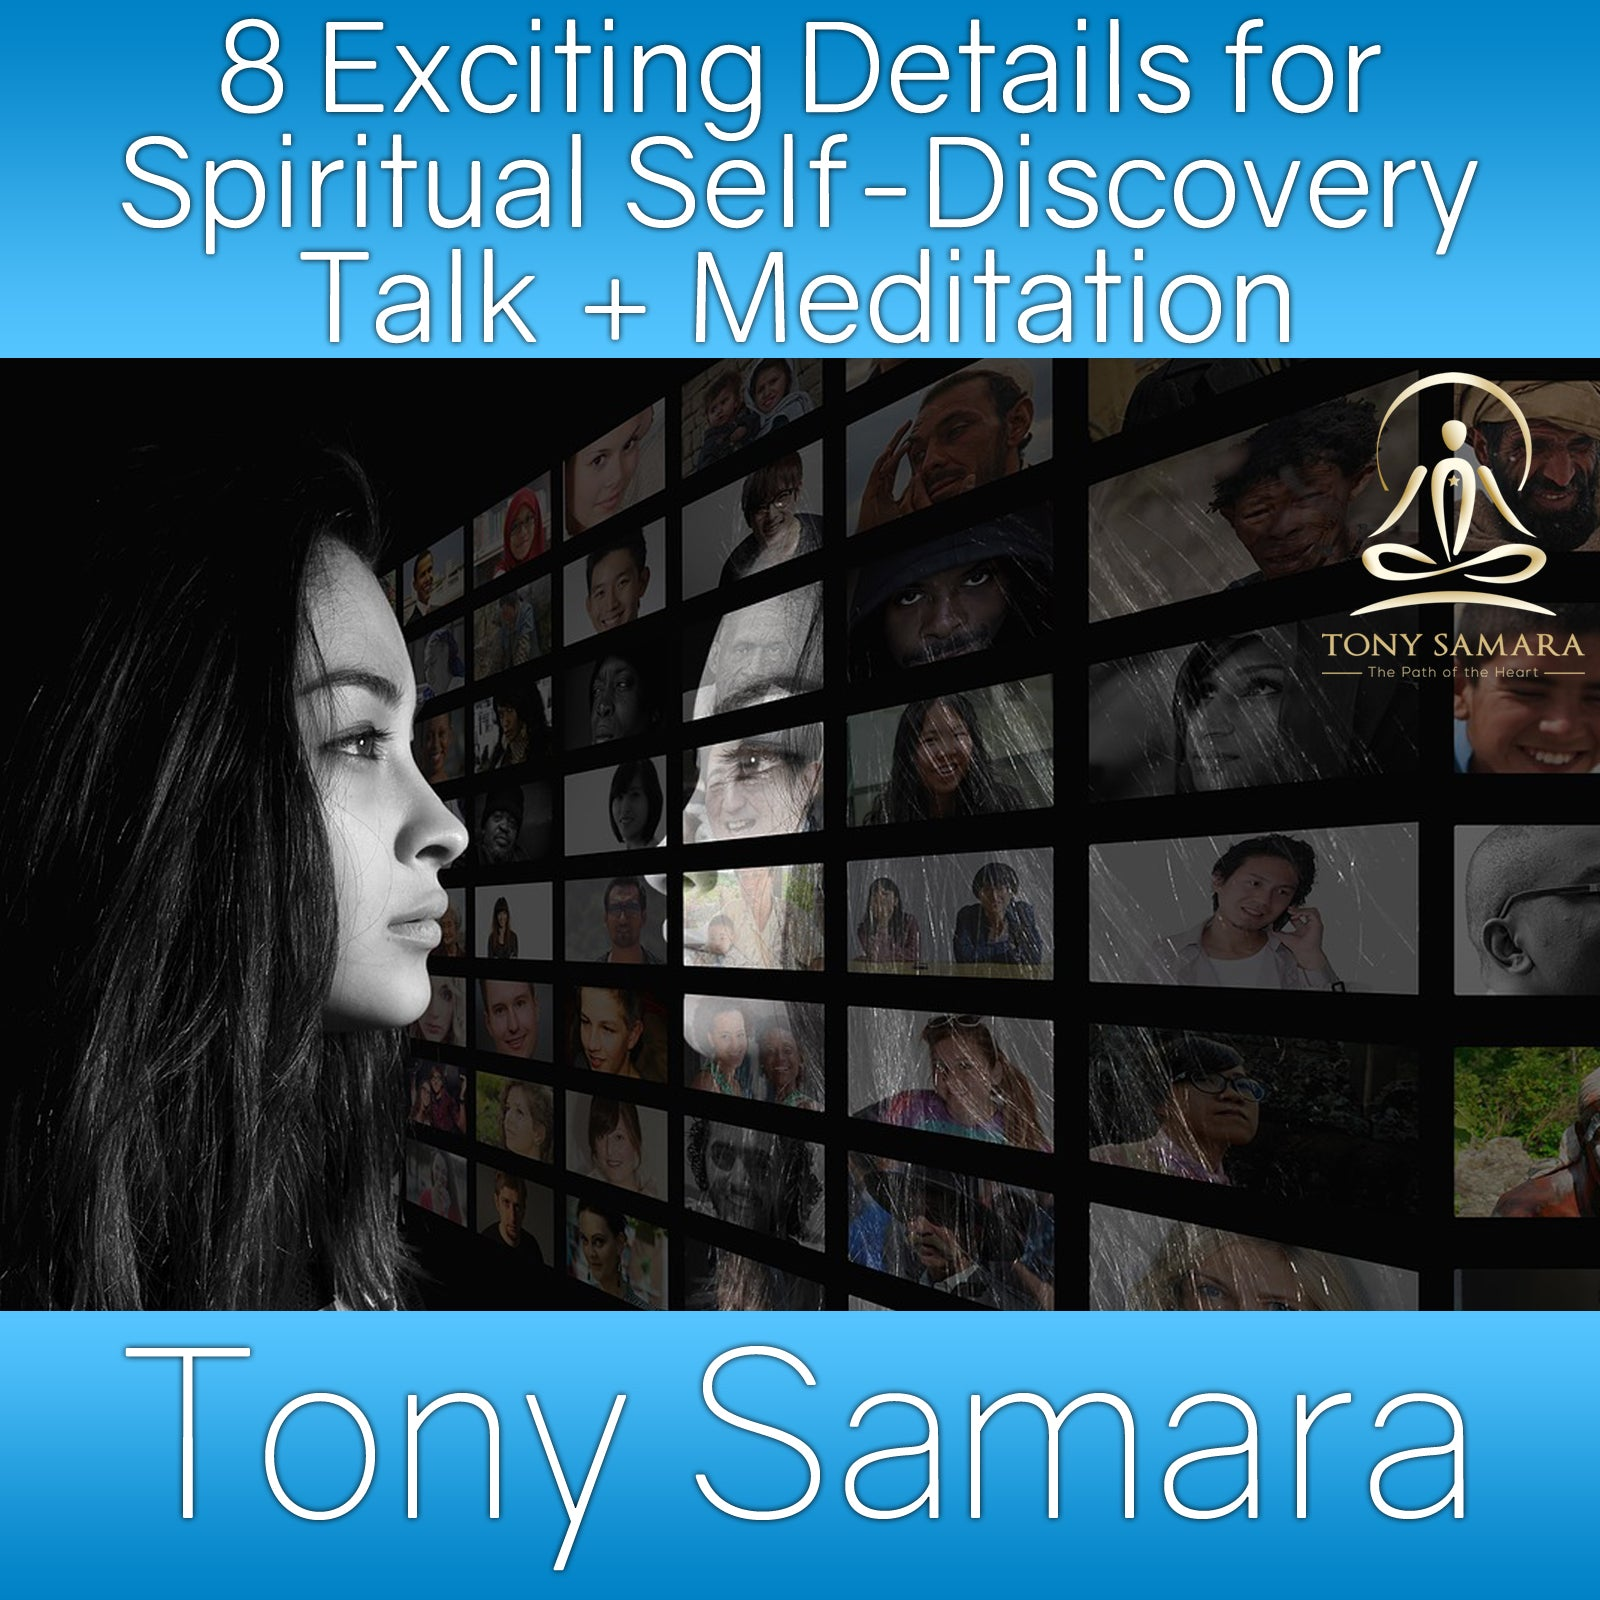 How to Meditate for Self Discovery